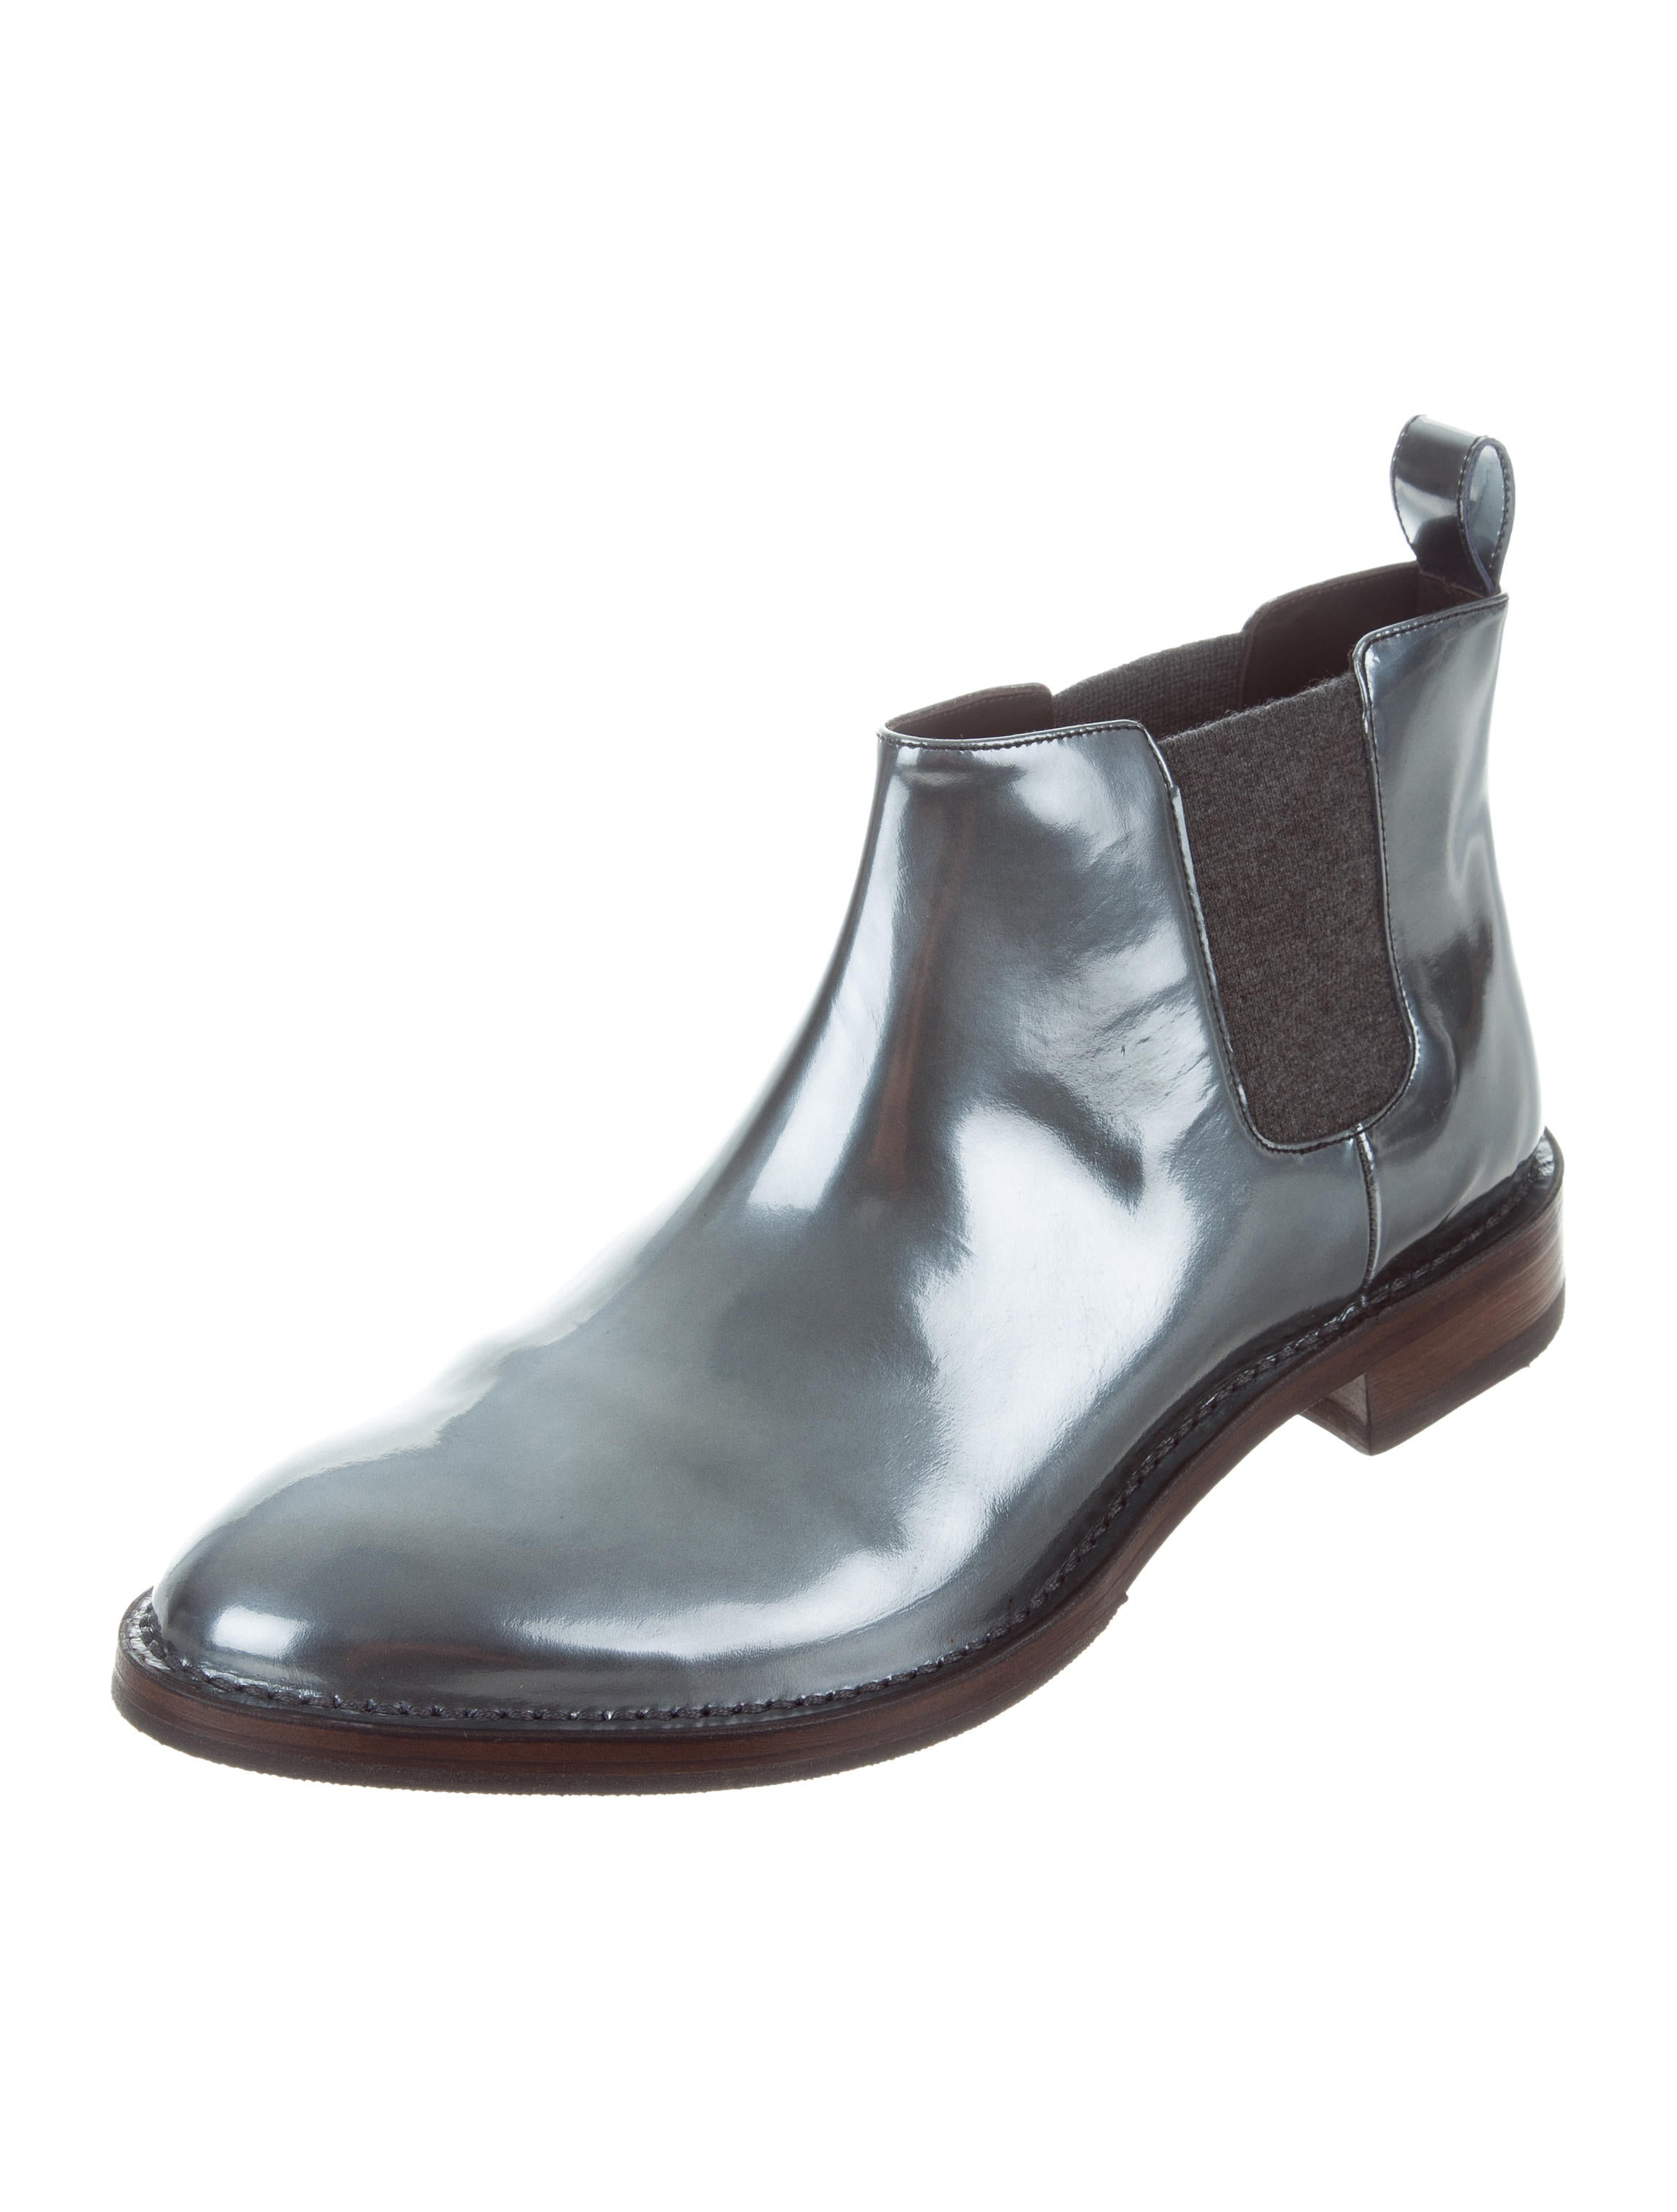 Metallic Leather Boots : Brunello cucinelli metallic leather chelsea boots w tags